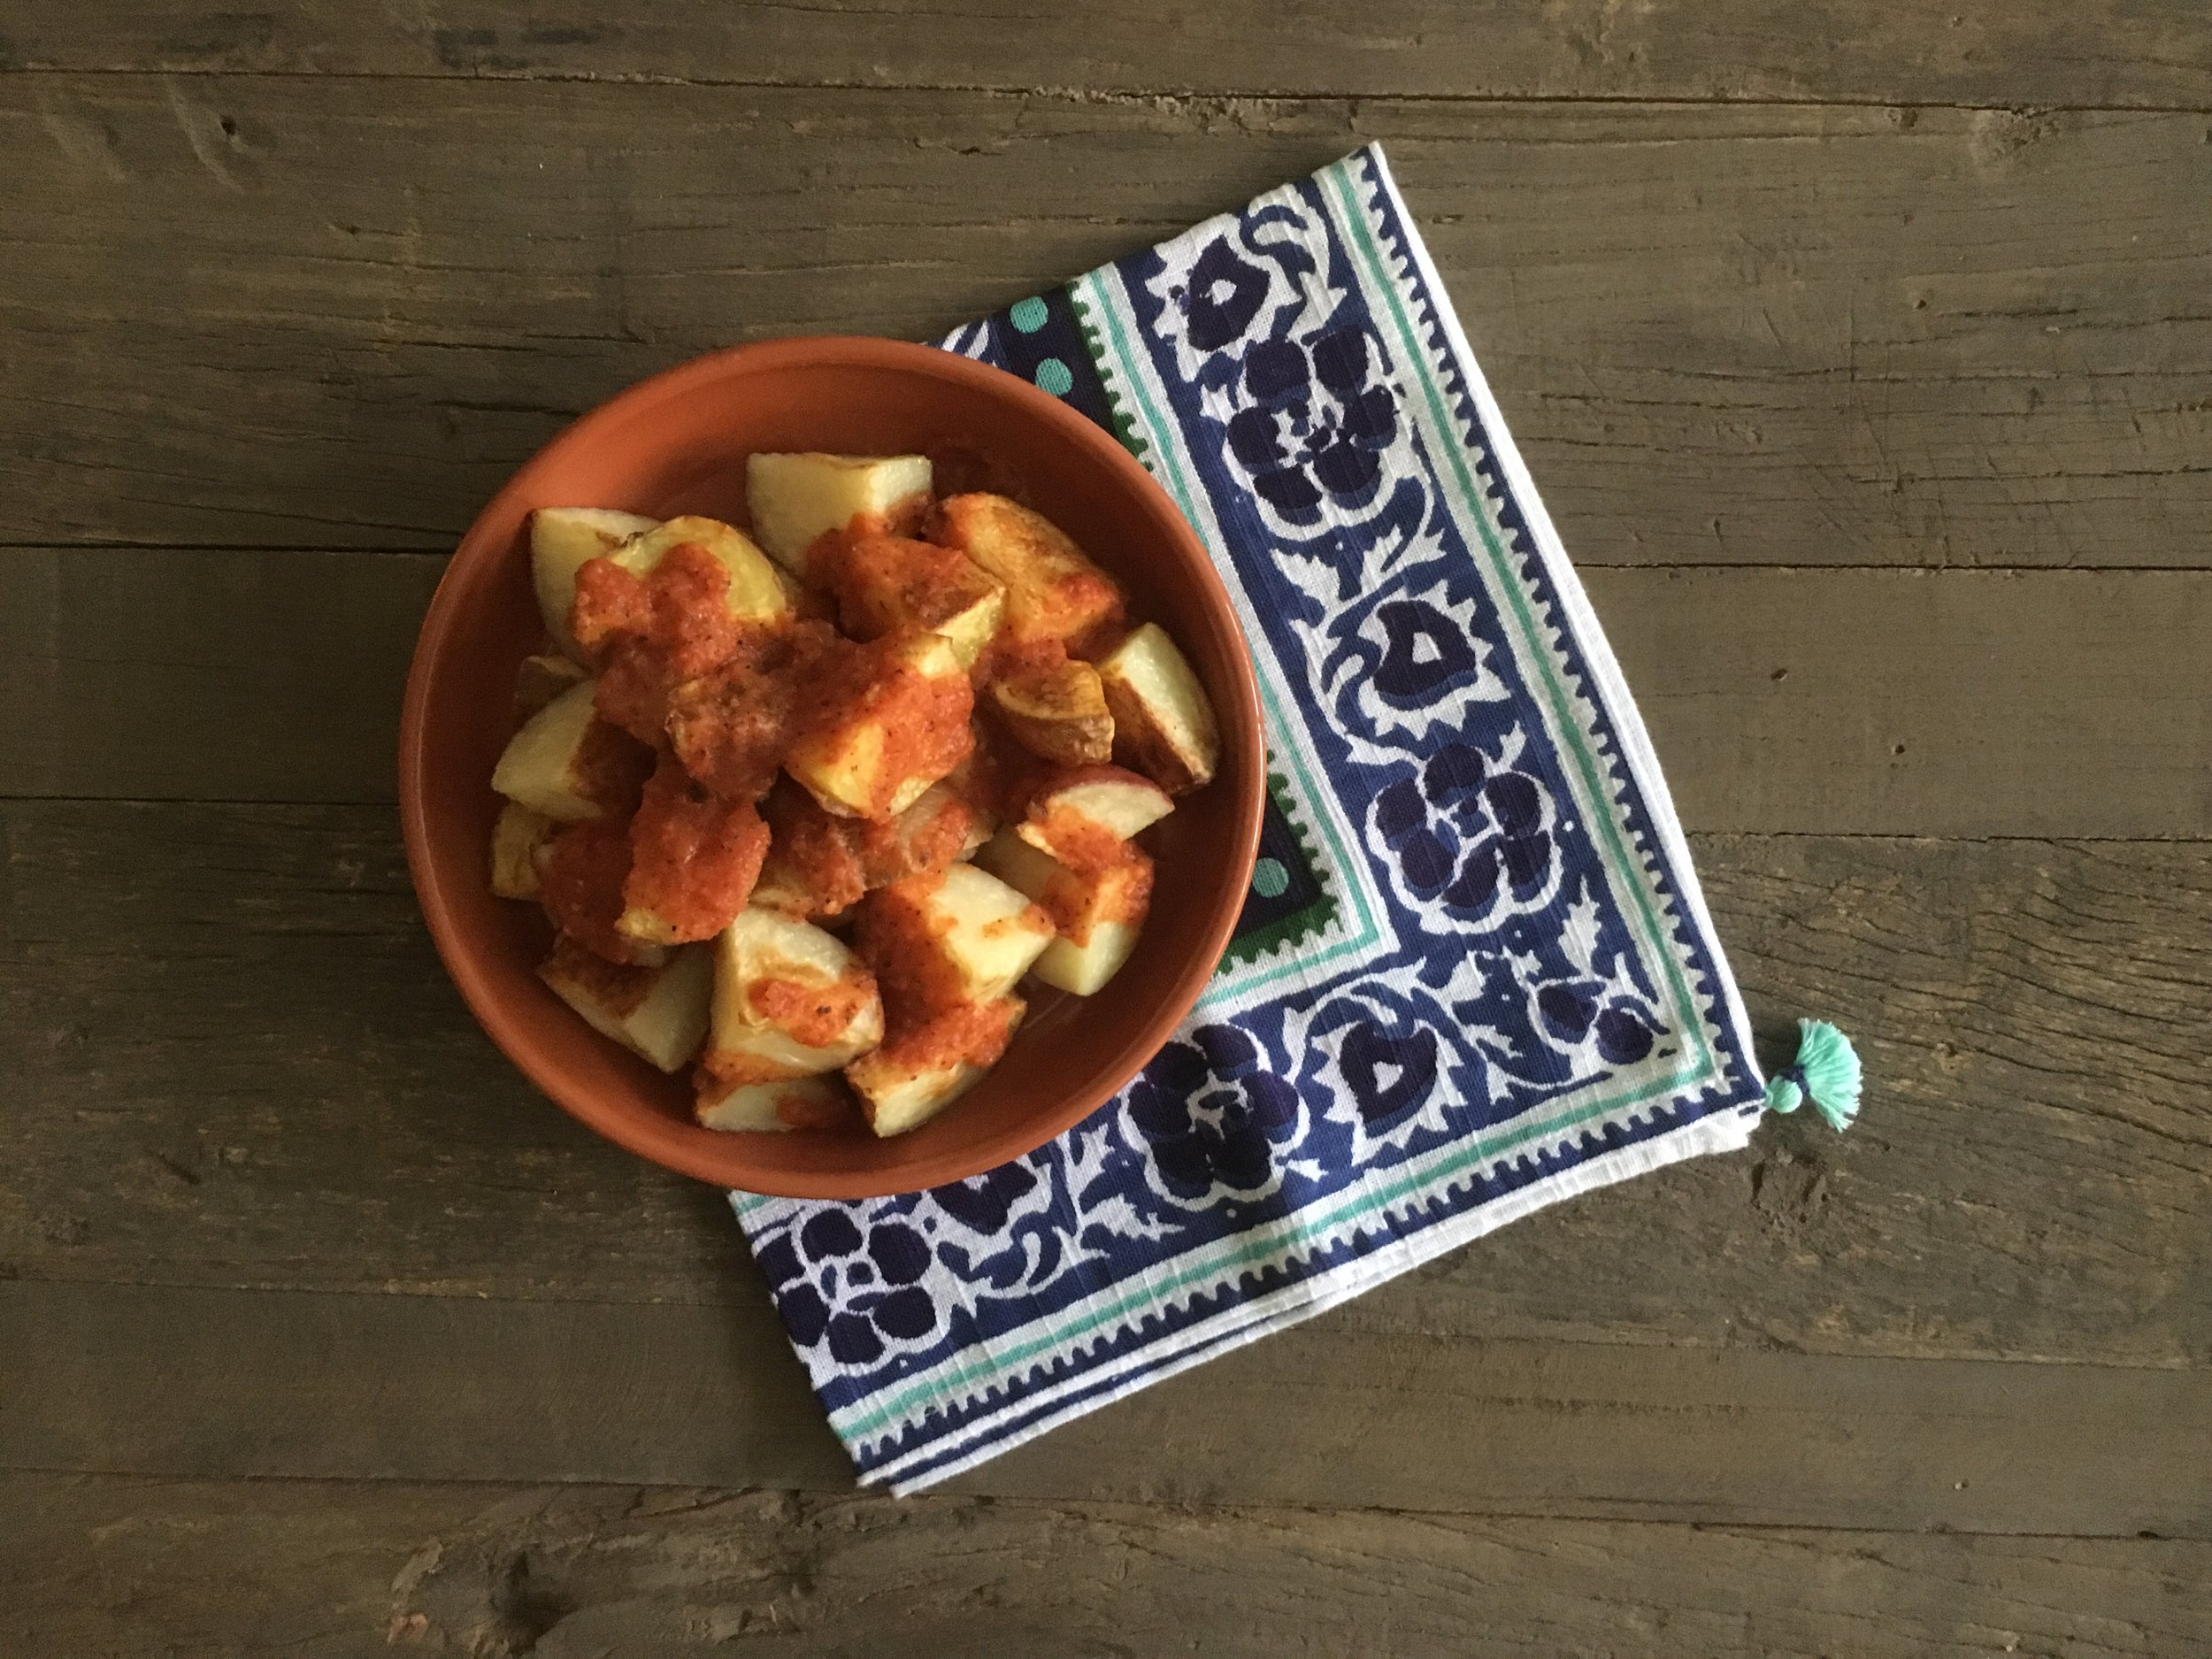 Move over, french fries. Patatas bravas is the new perfect side dish